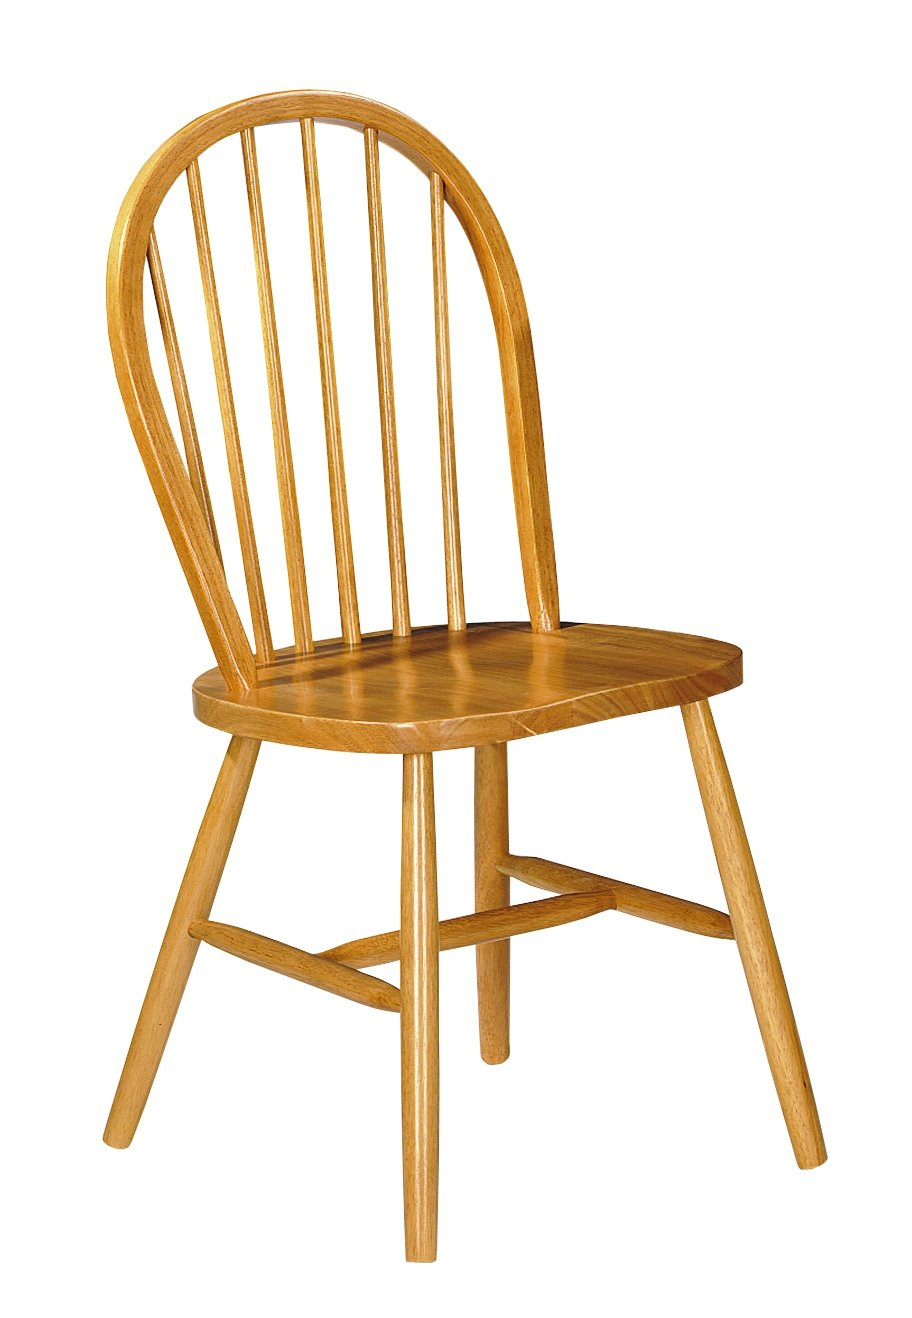 julian bowen windsor dining chairs pine set of  amazoncouk kitchen home. julian bowen windsor dining chairs pine set of  amazoncouk